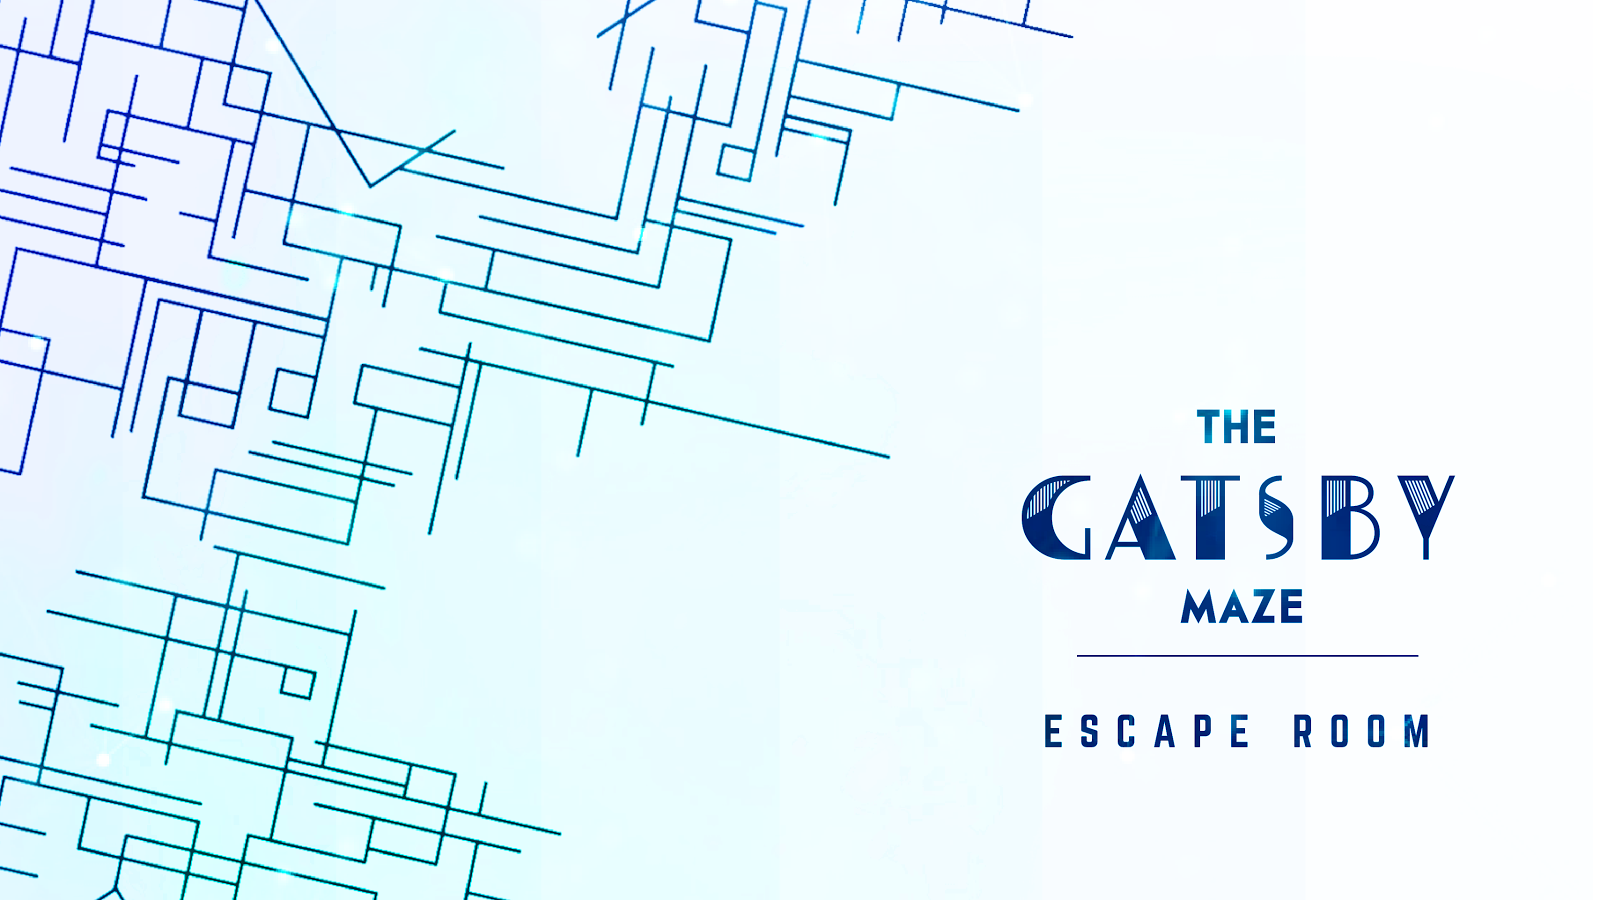 The Gatsby Maze Escape Room